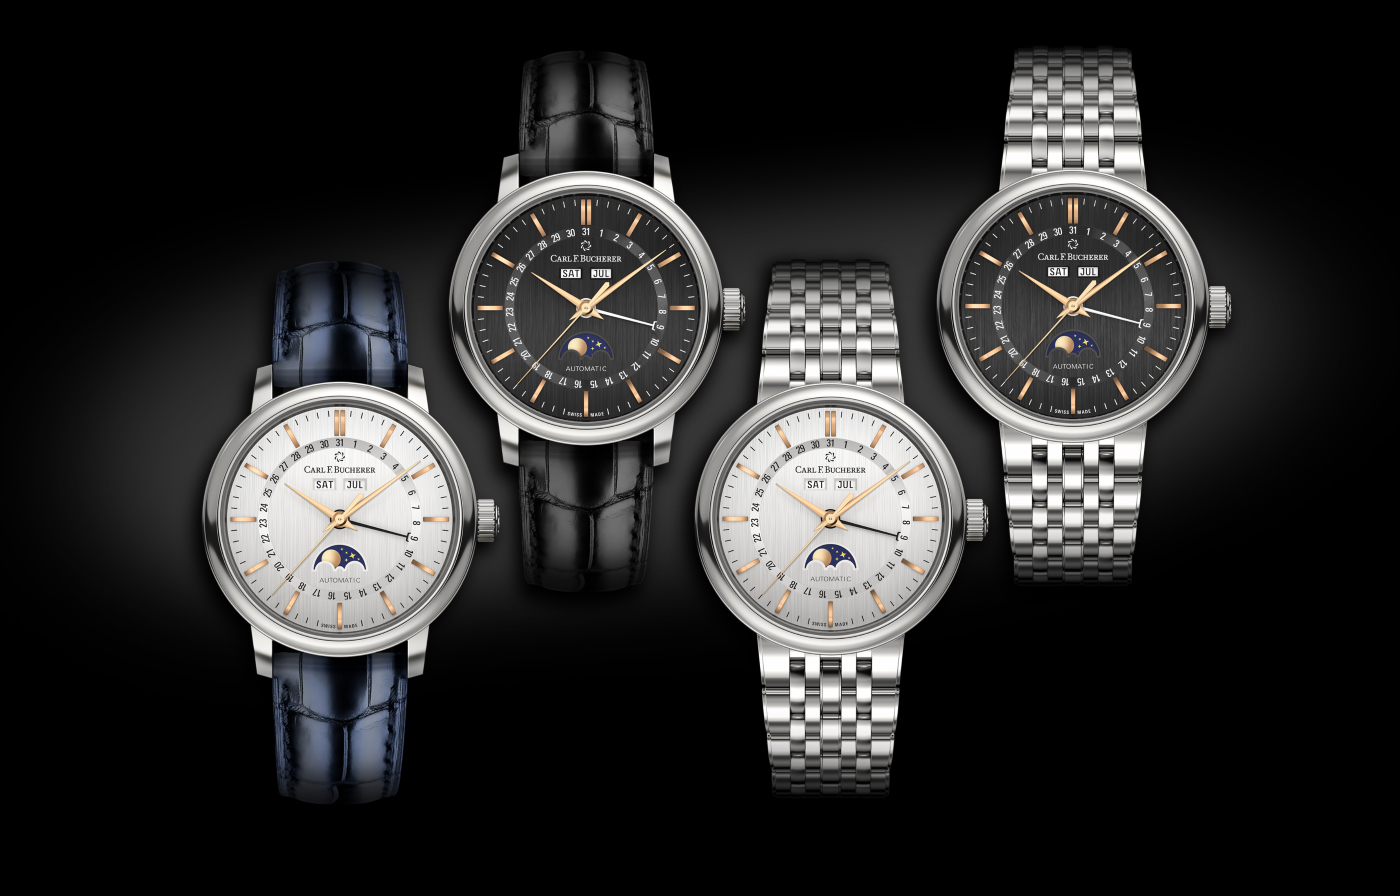 carl_f_bucherer_the_new_adamavi_fullcalendar_models_-_europa_star_magazine_2021